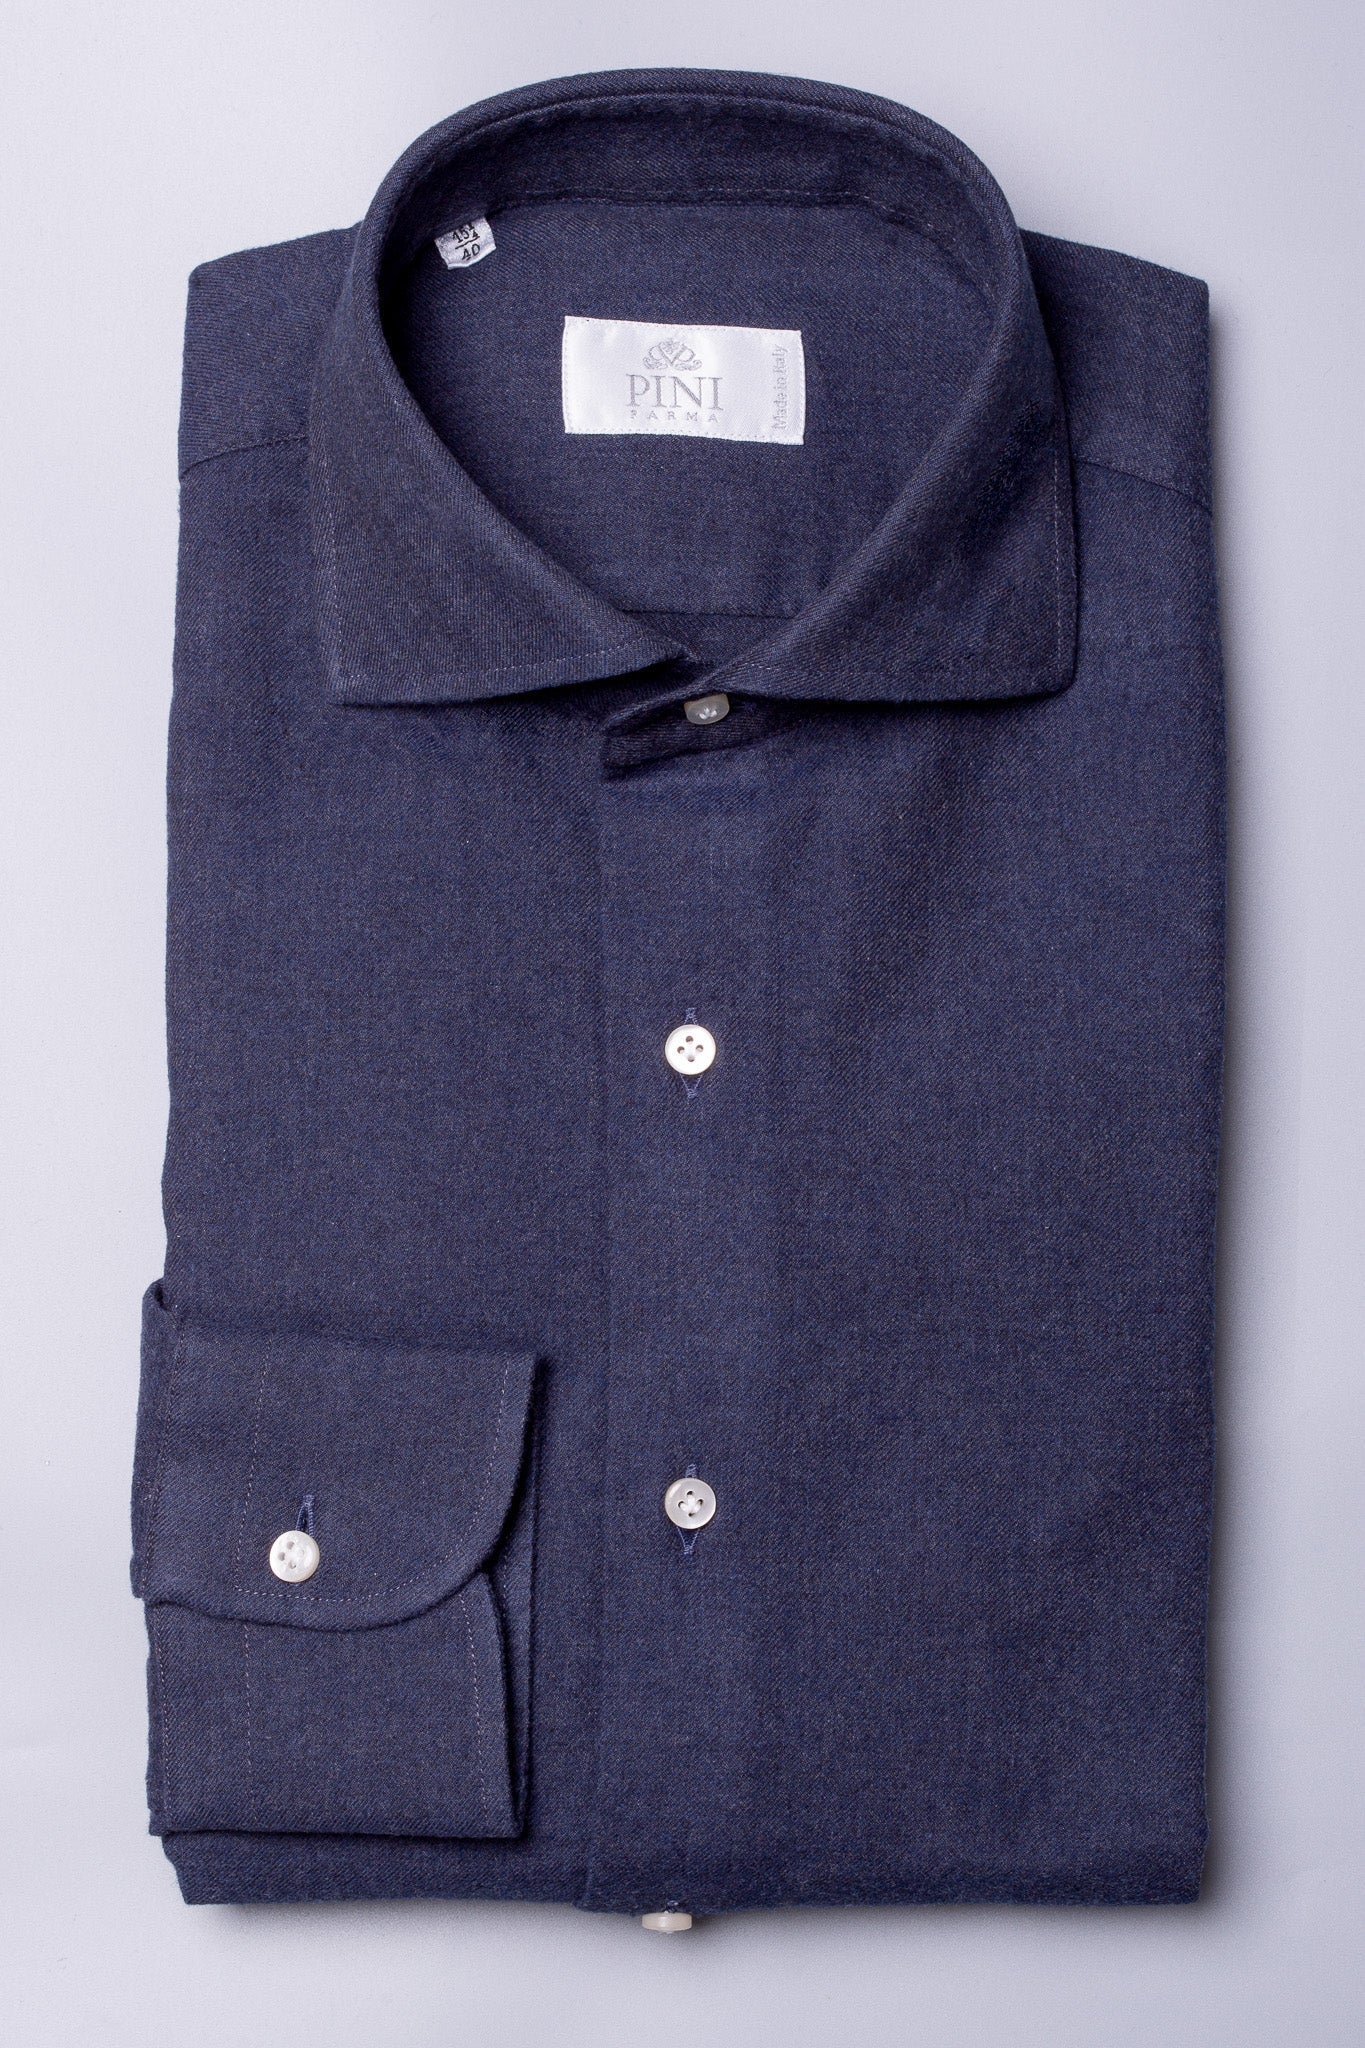 BLUE SHIRT - Flannel Touch - Made in Italy